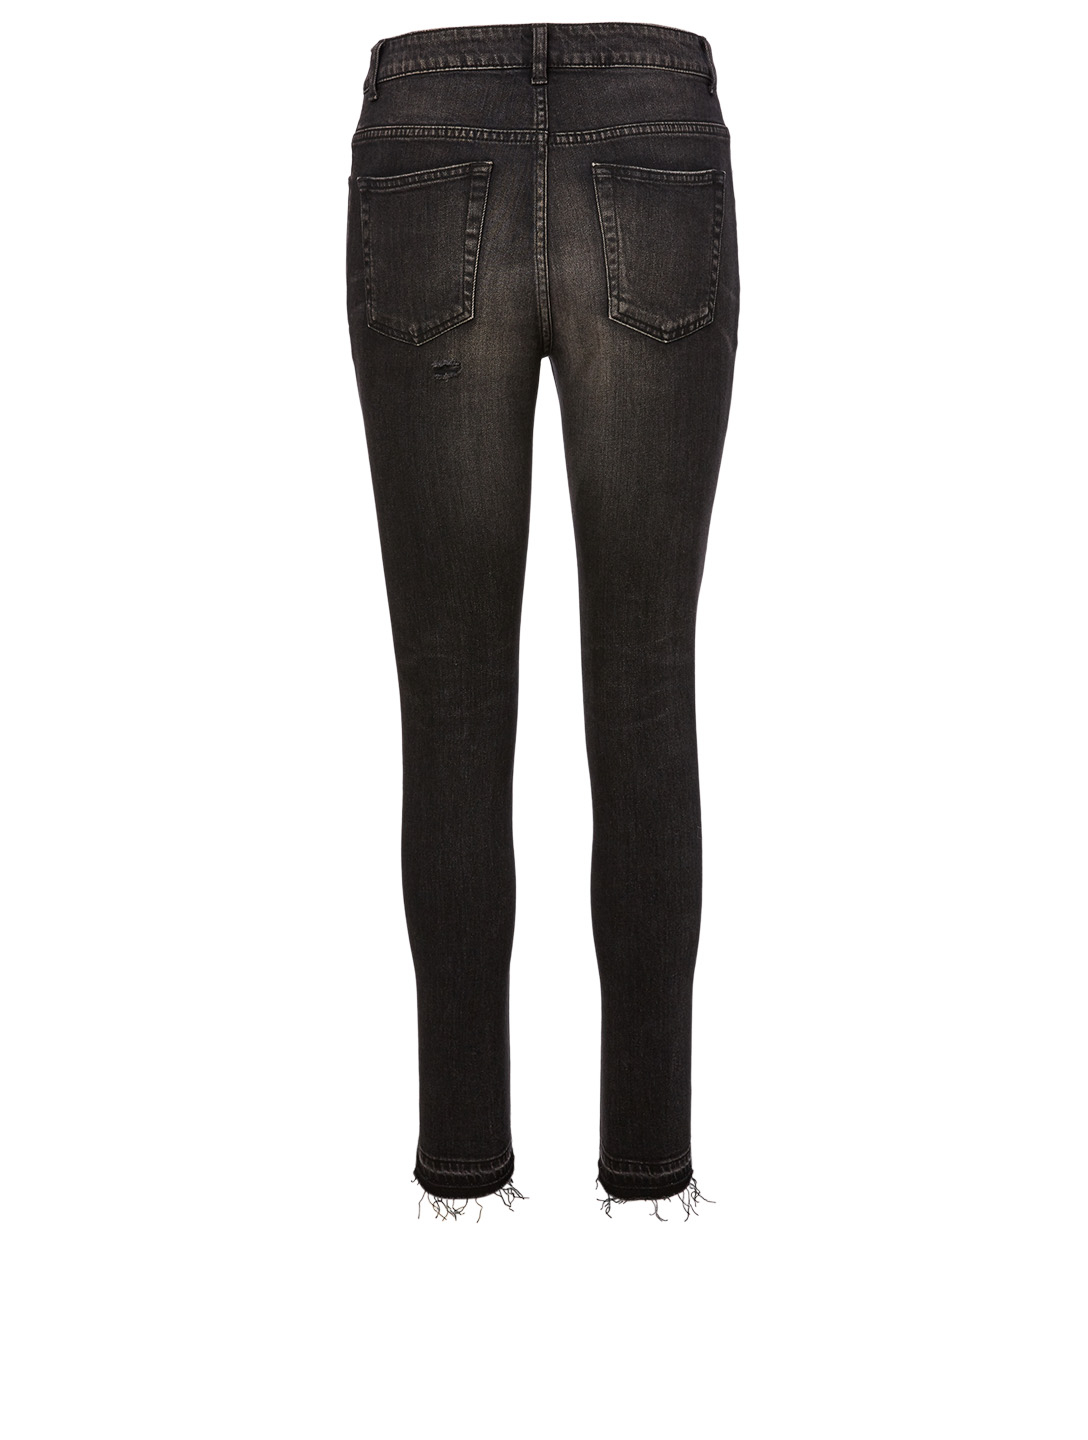 SAINT LAURENT Frayed Skinny Jeans Women's Black